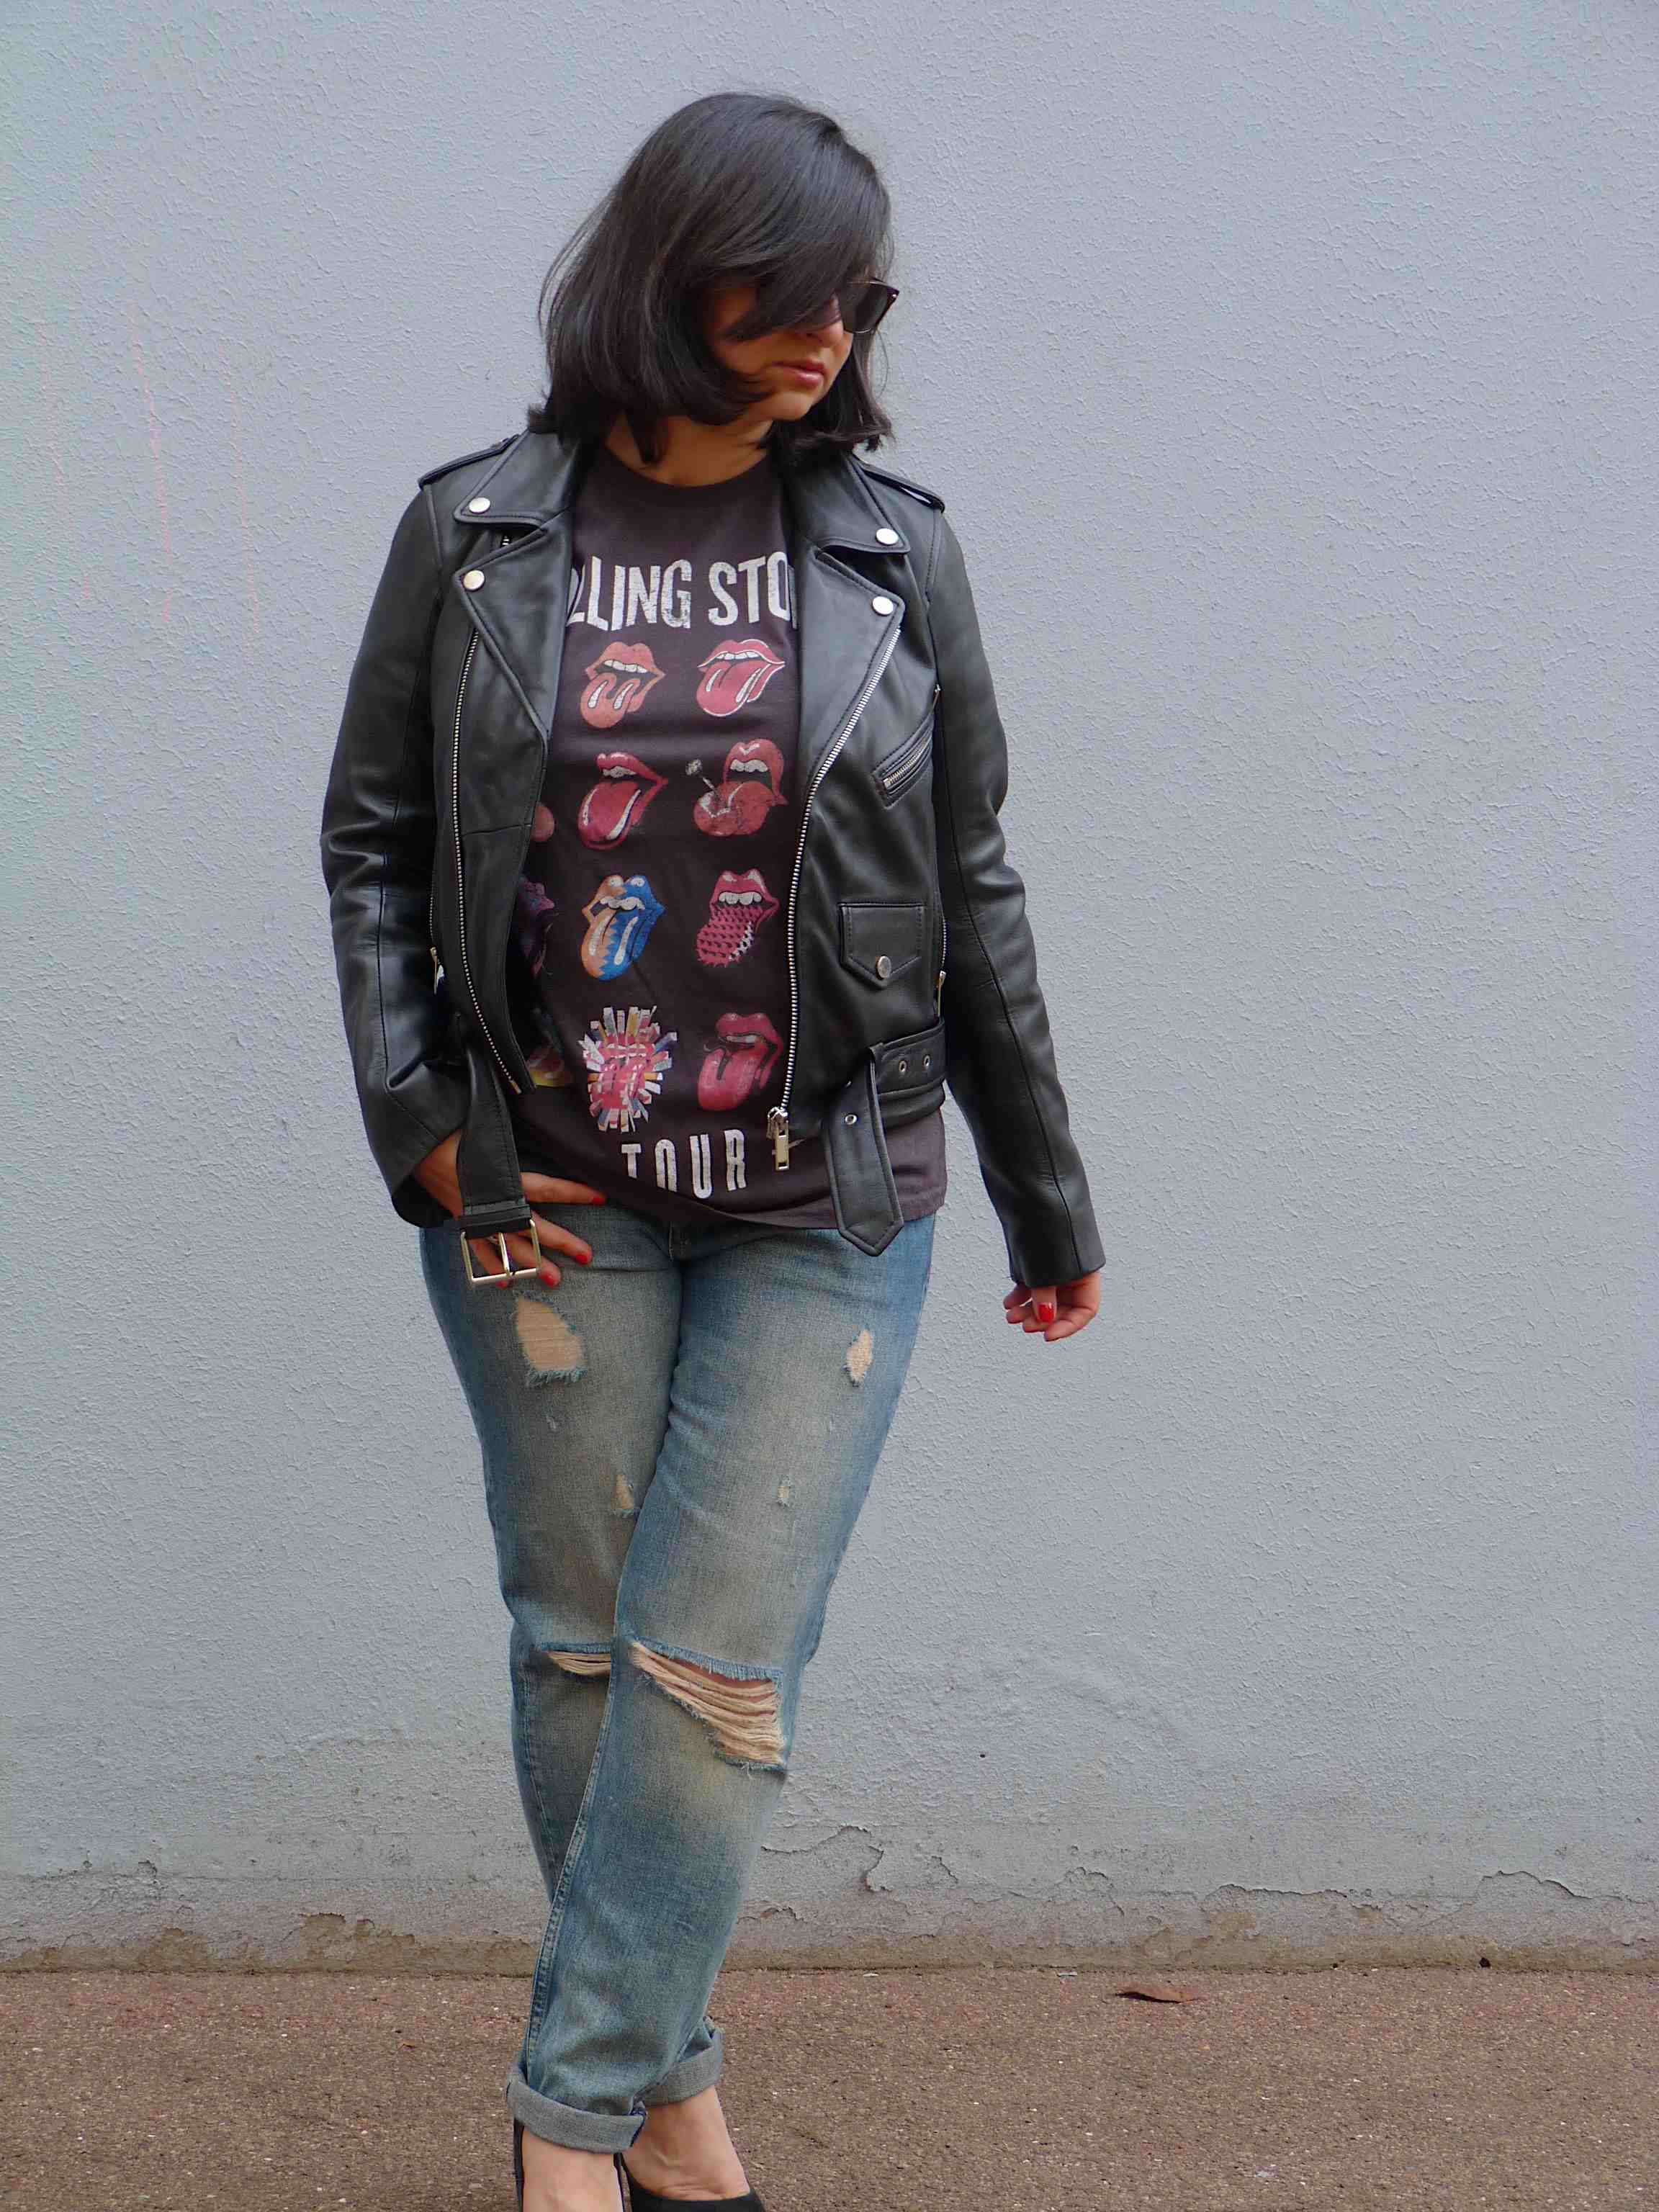 Tee Rolling Stones - Pull and Bear (8)